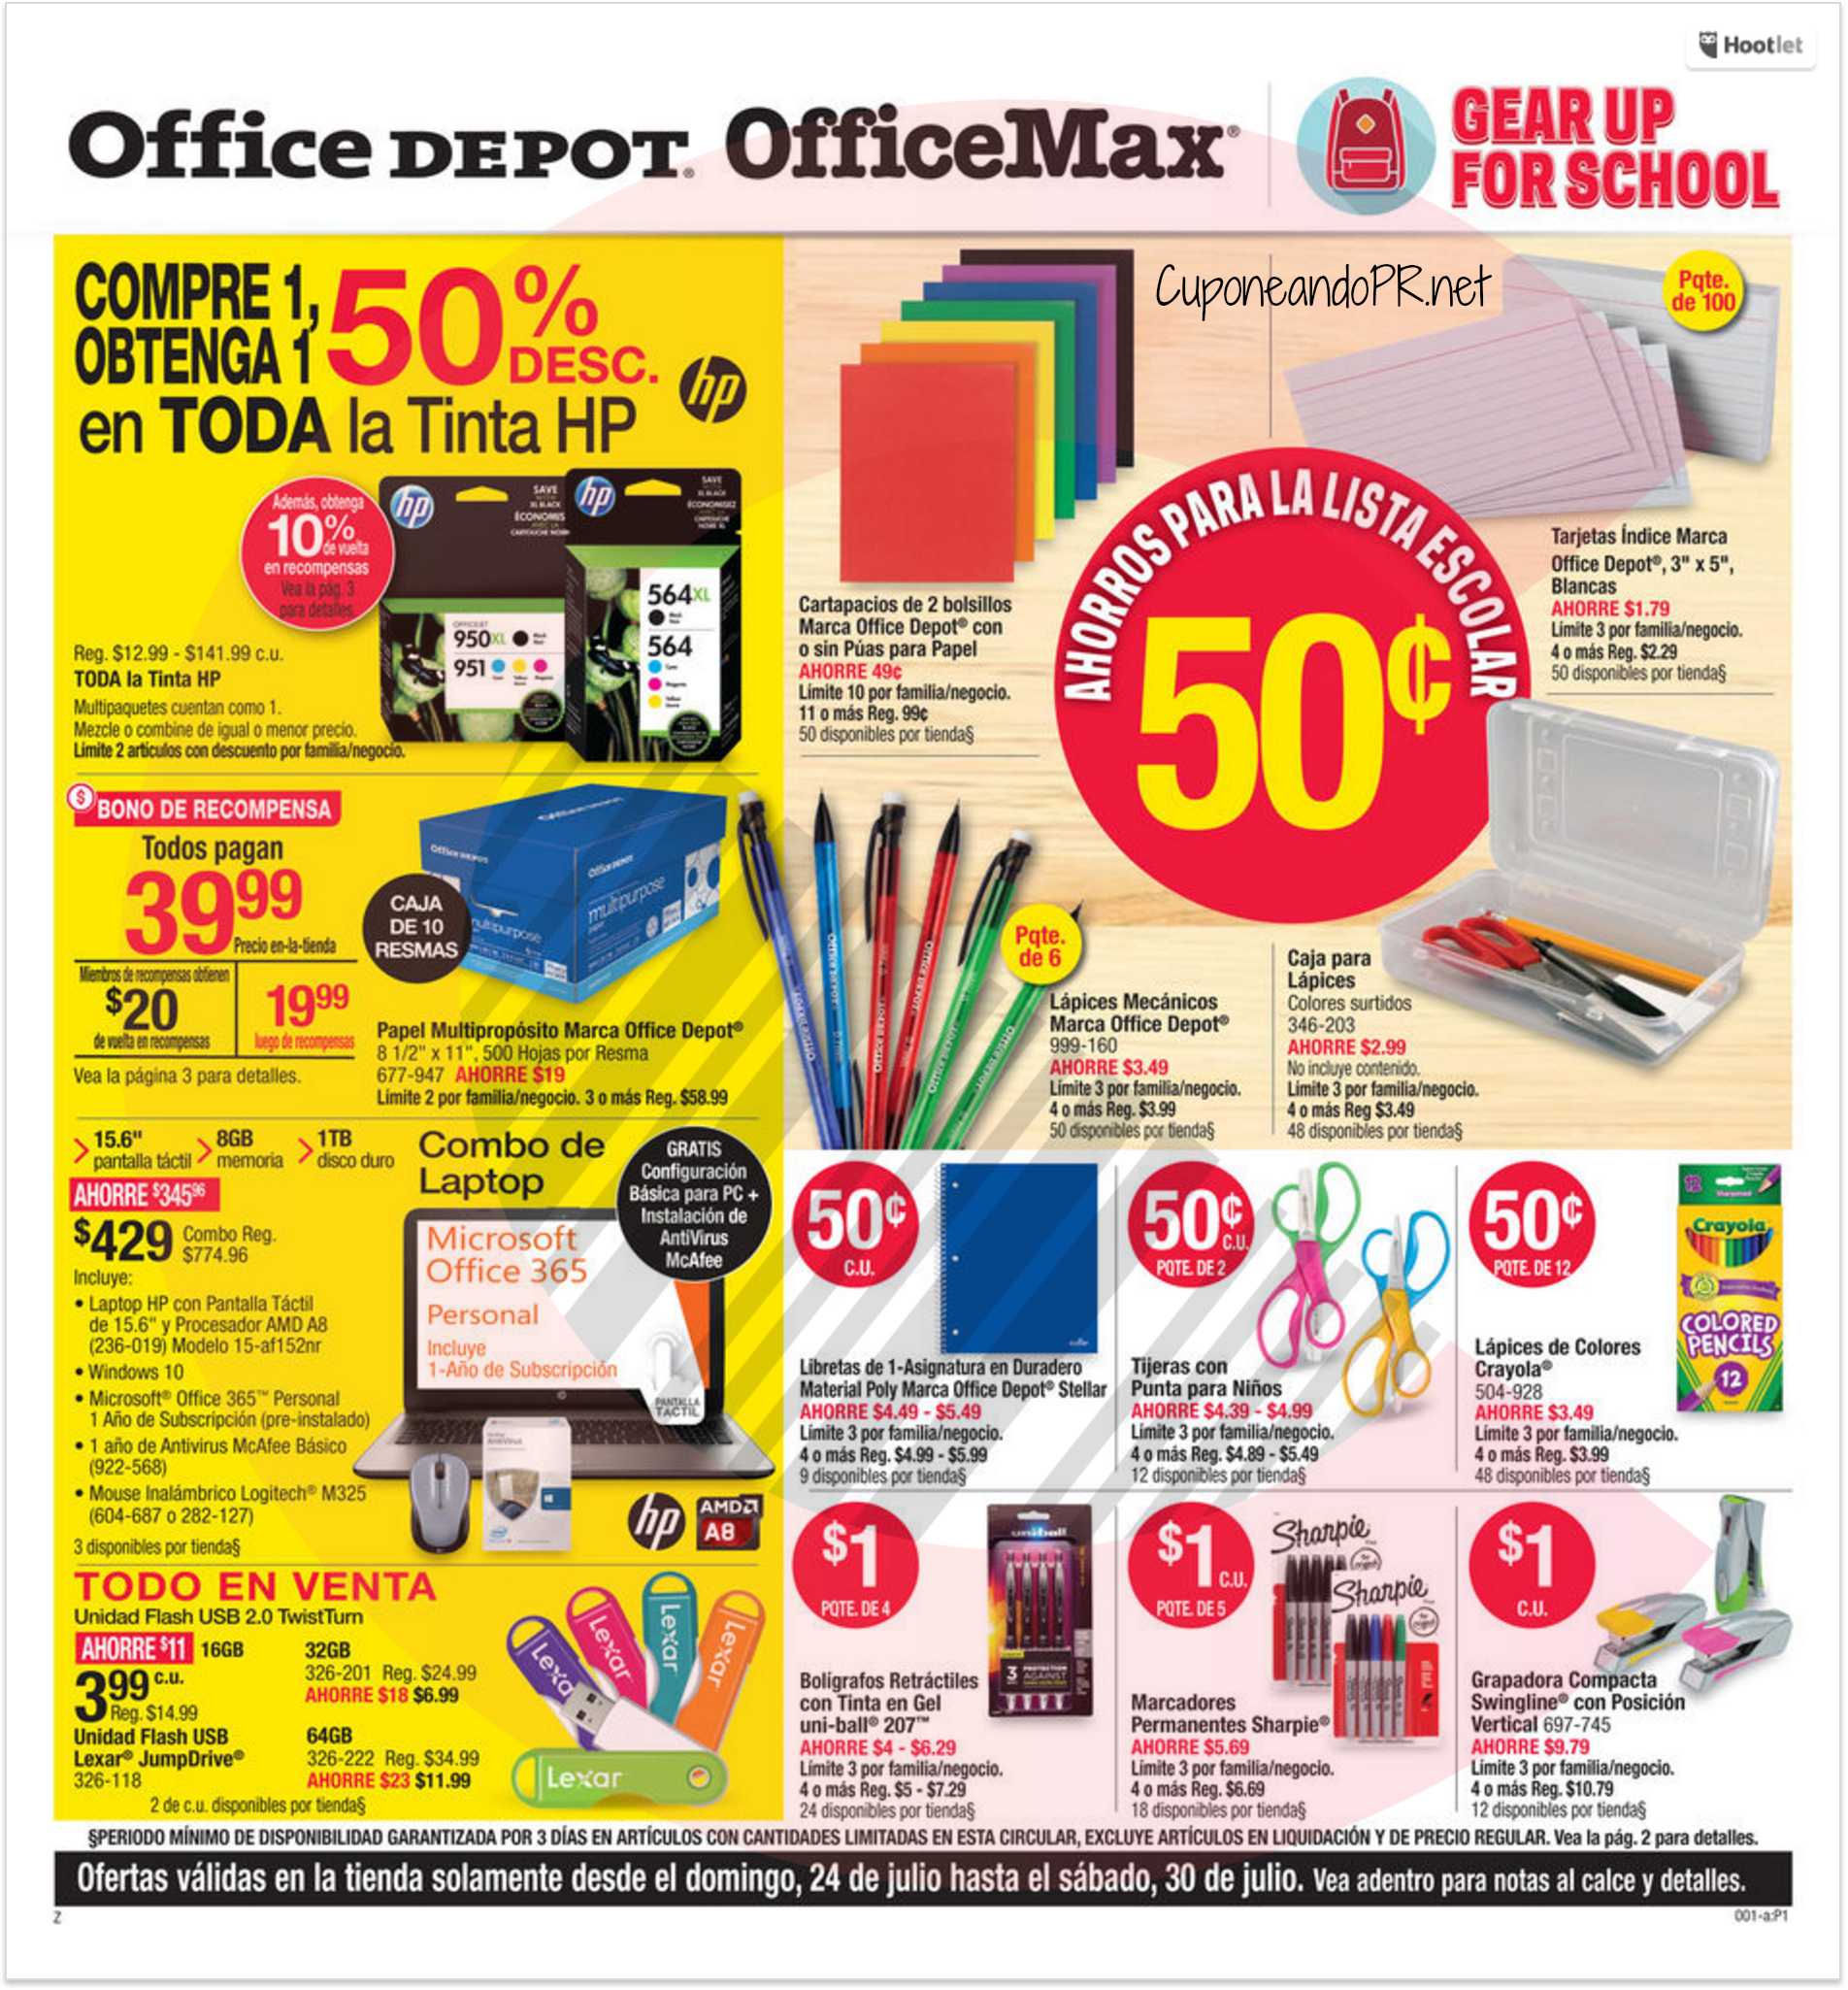 Shopper OfficeMax Office Depot